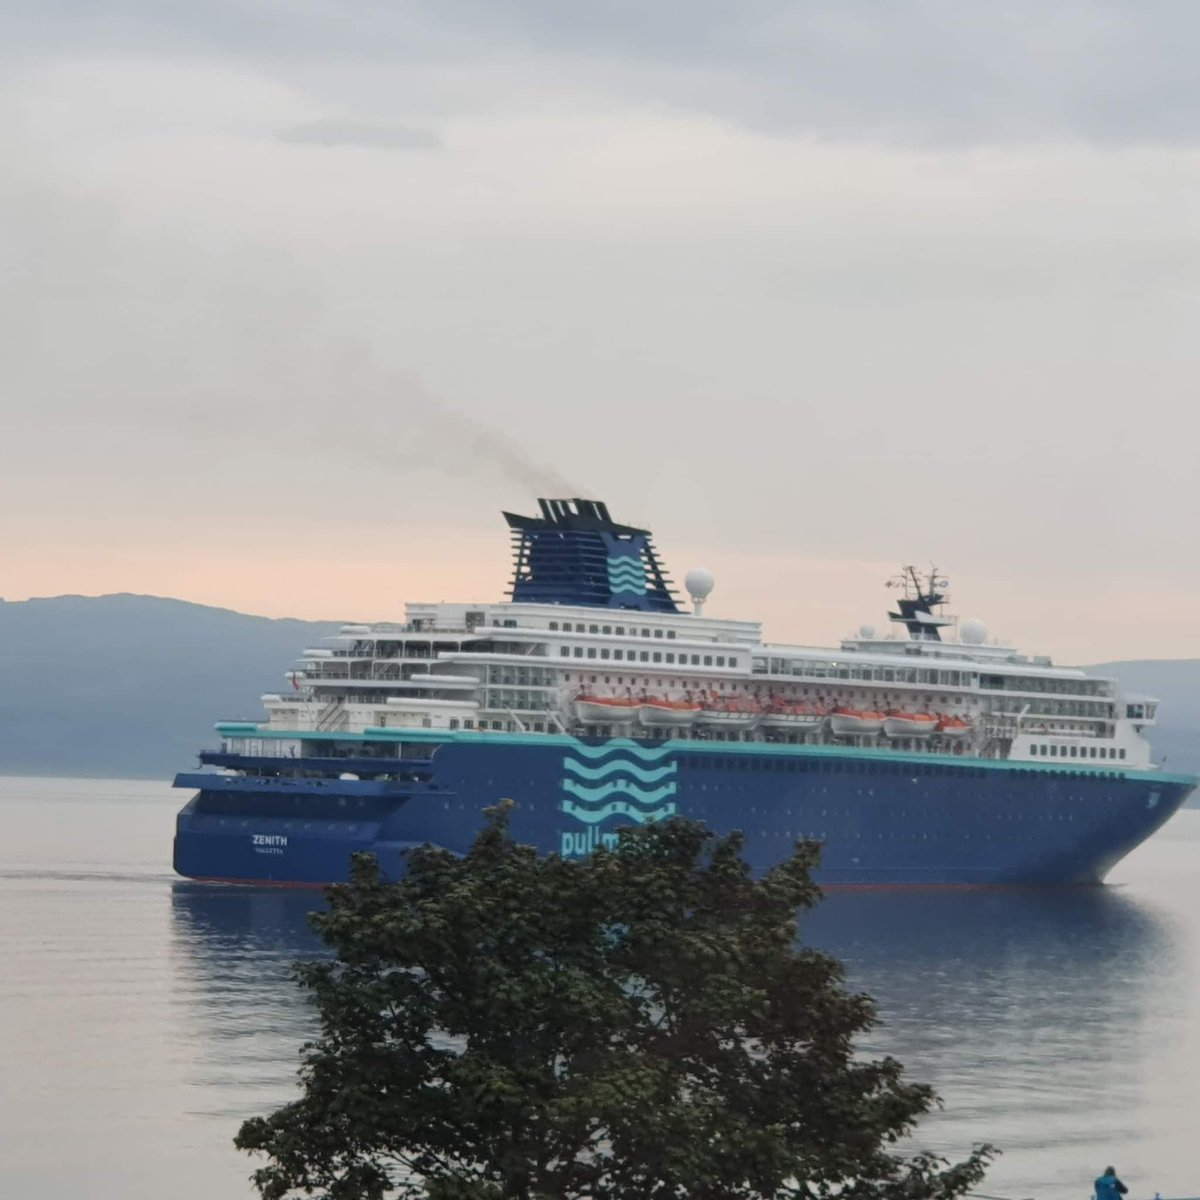 Pictures of Zenith #CruiseShip coming into #Greenock #Inverclyde #Scotland this morning from the Esplanade. Thanks to Jim Sandra Wilson for the pictures. #ScotlandIsNow #VisitScotland #LoveScotland #DiscoverInverclyde #RiverClyde #Sailing #mustseascotland #MarineTourism